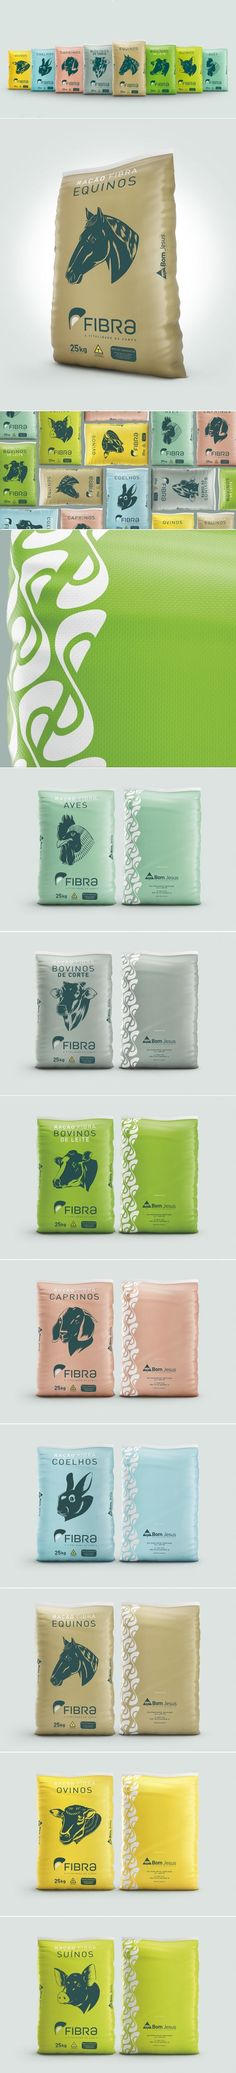 Fibra Animal Food Packaging by Mind | Fivestar Branding Agency – Design and Branding Agency & Curated Inspiration Gallery